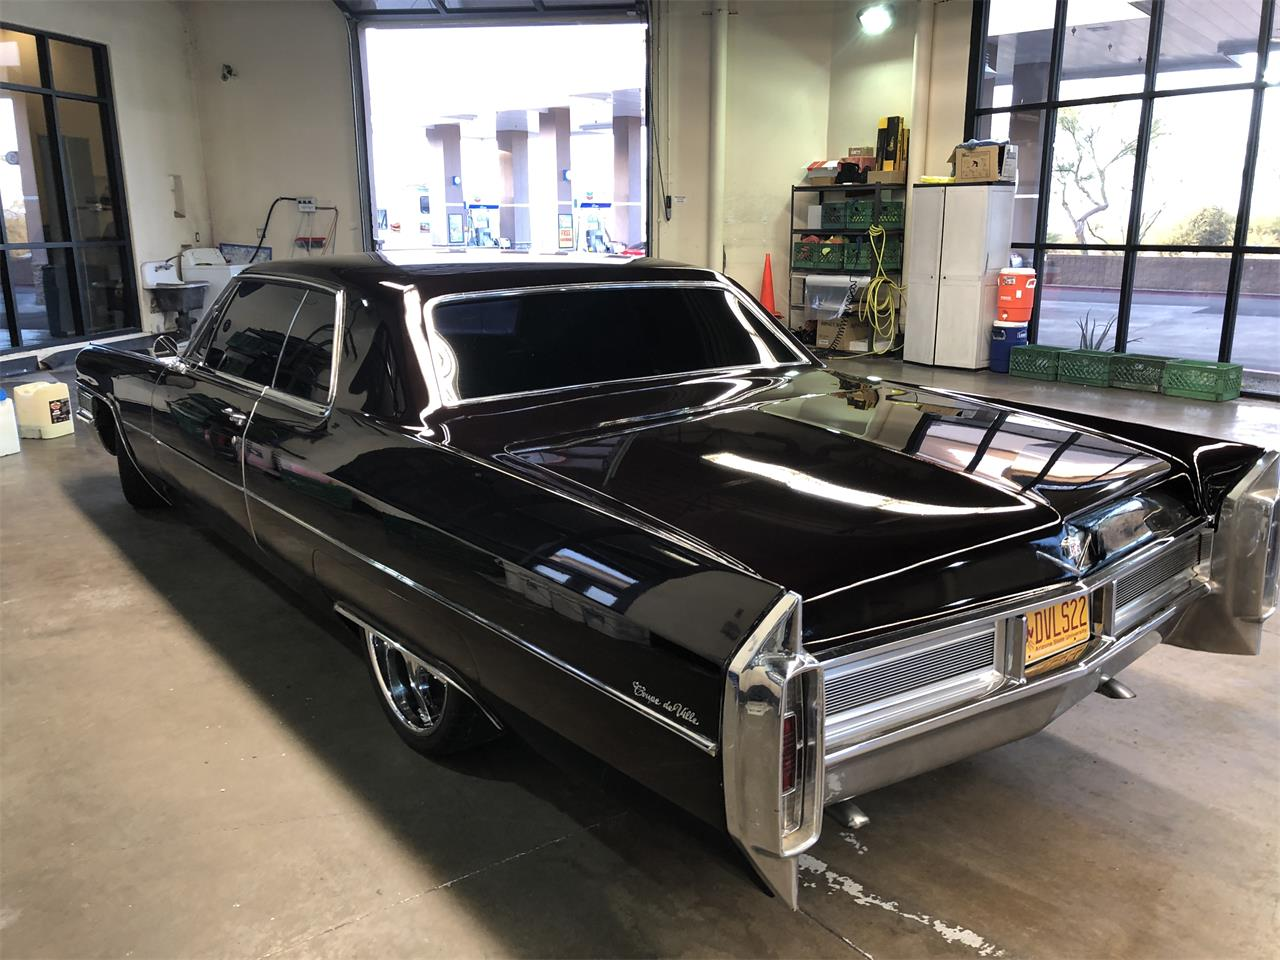 Large Picture of Classic 1965 Cadillac Coupe DeVille located in Scottsdale Arizona Offered by a Private Seller - MKRX